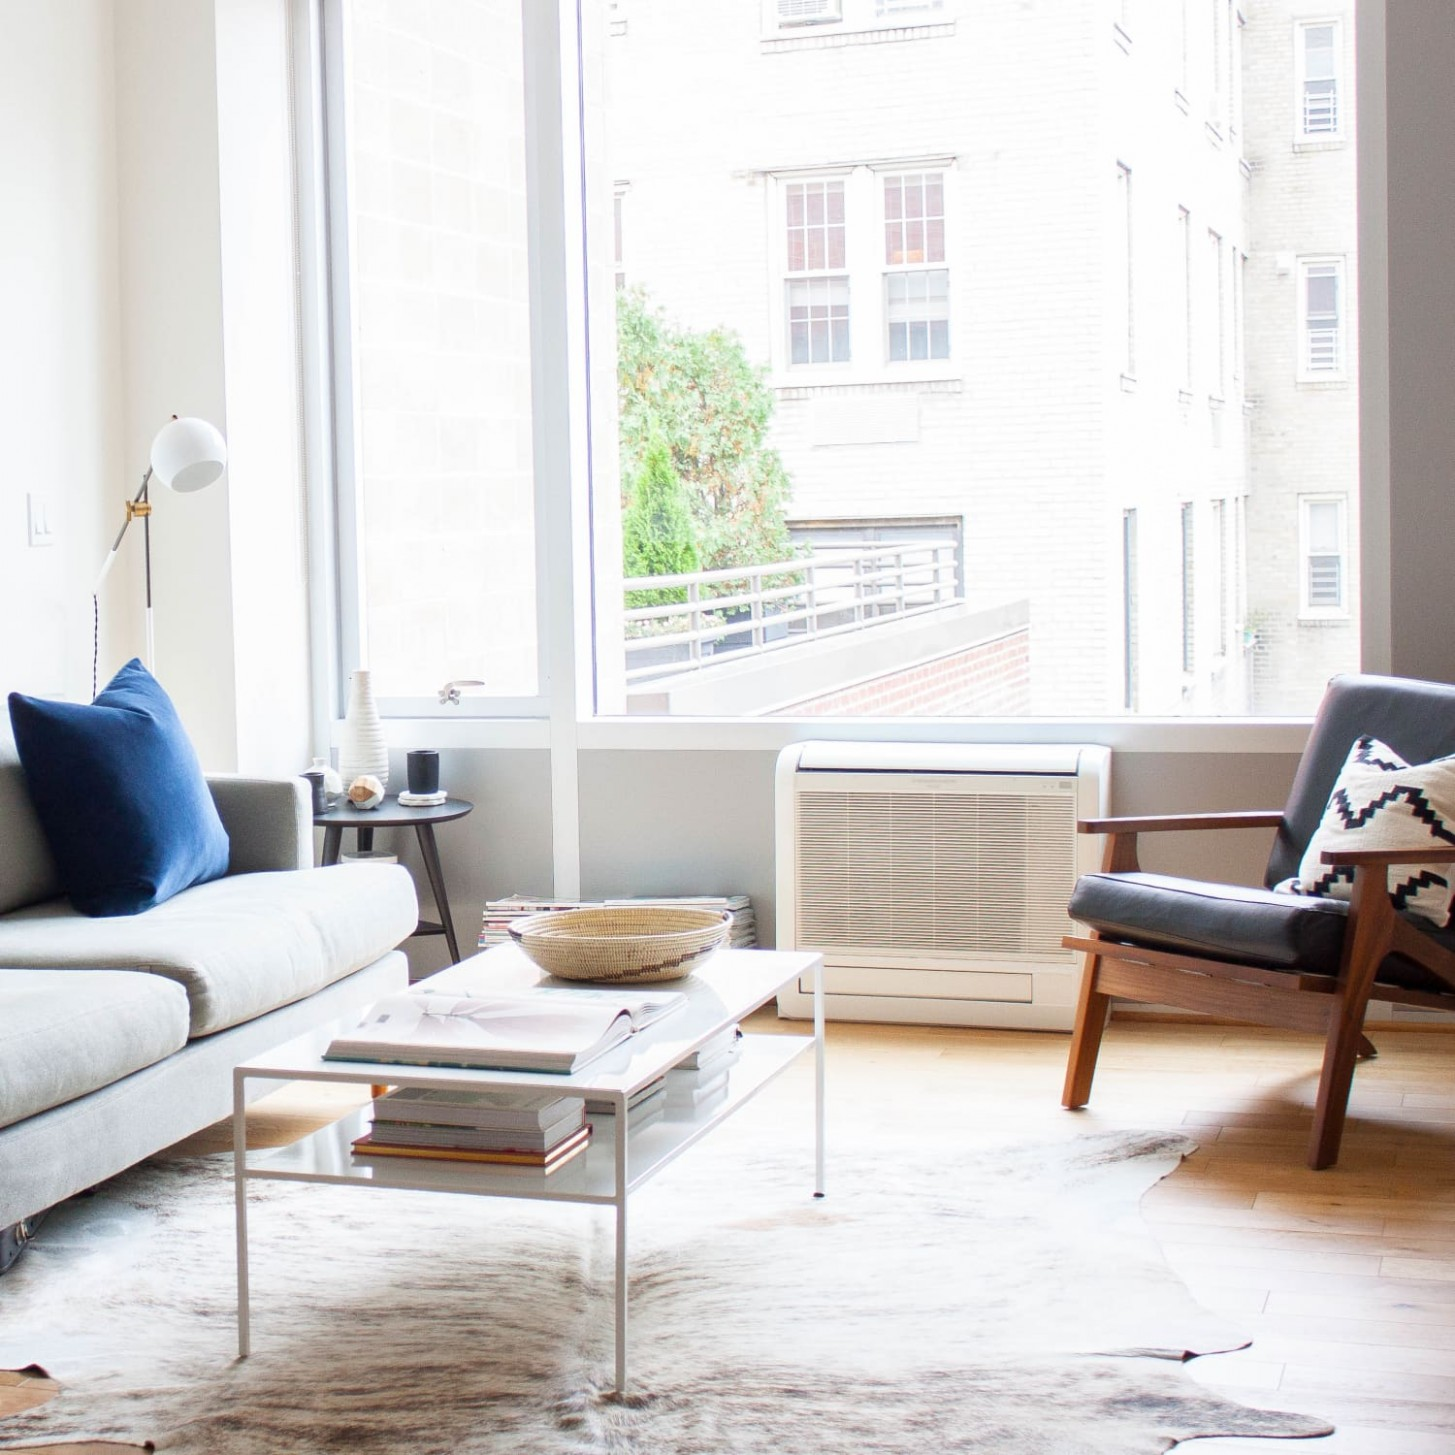 12 Small Living Room Decorating & Design Ideas - How to Decorate a  - Apartment House Design Ideas